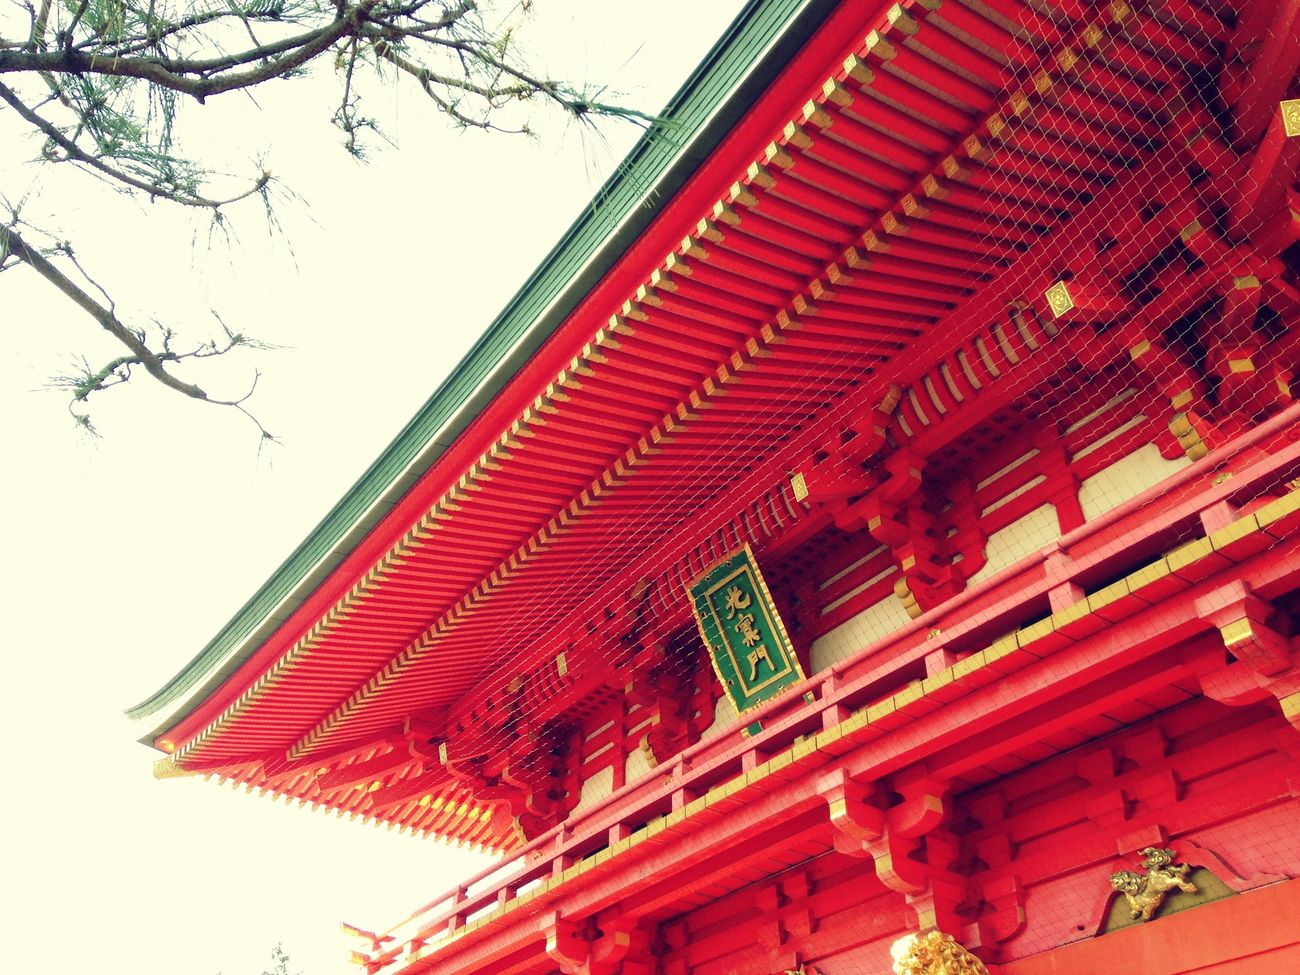 Temple Gate EyeEm Best Shots - Architecture Red